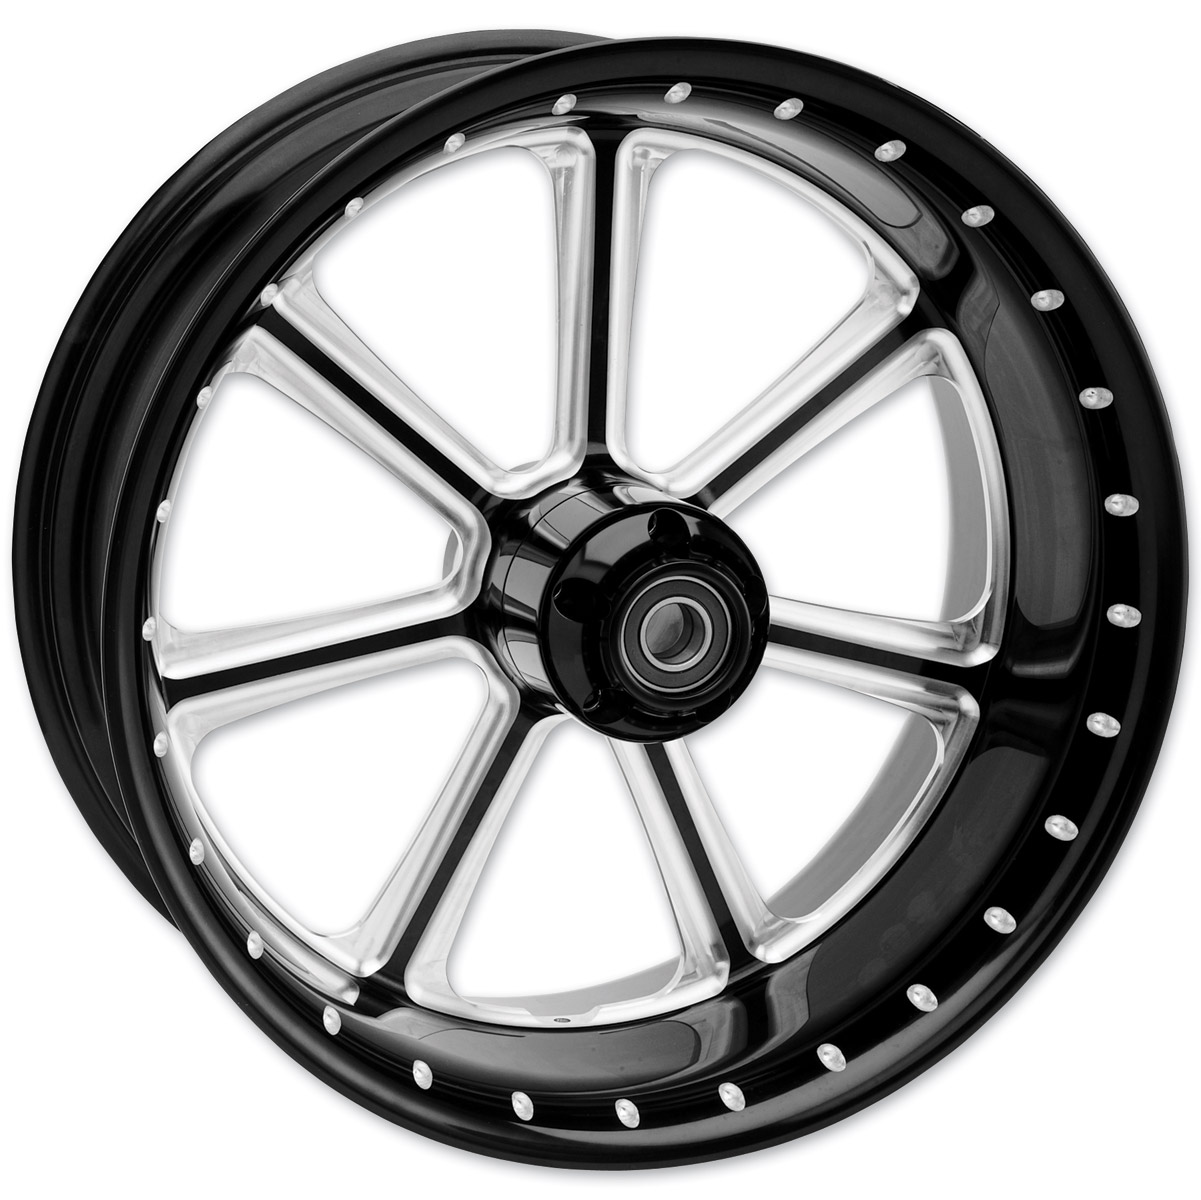 Roland Sands Design Contrast Cut Diesel Front Wheel with ABS, 16 x 3.5